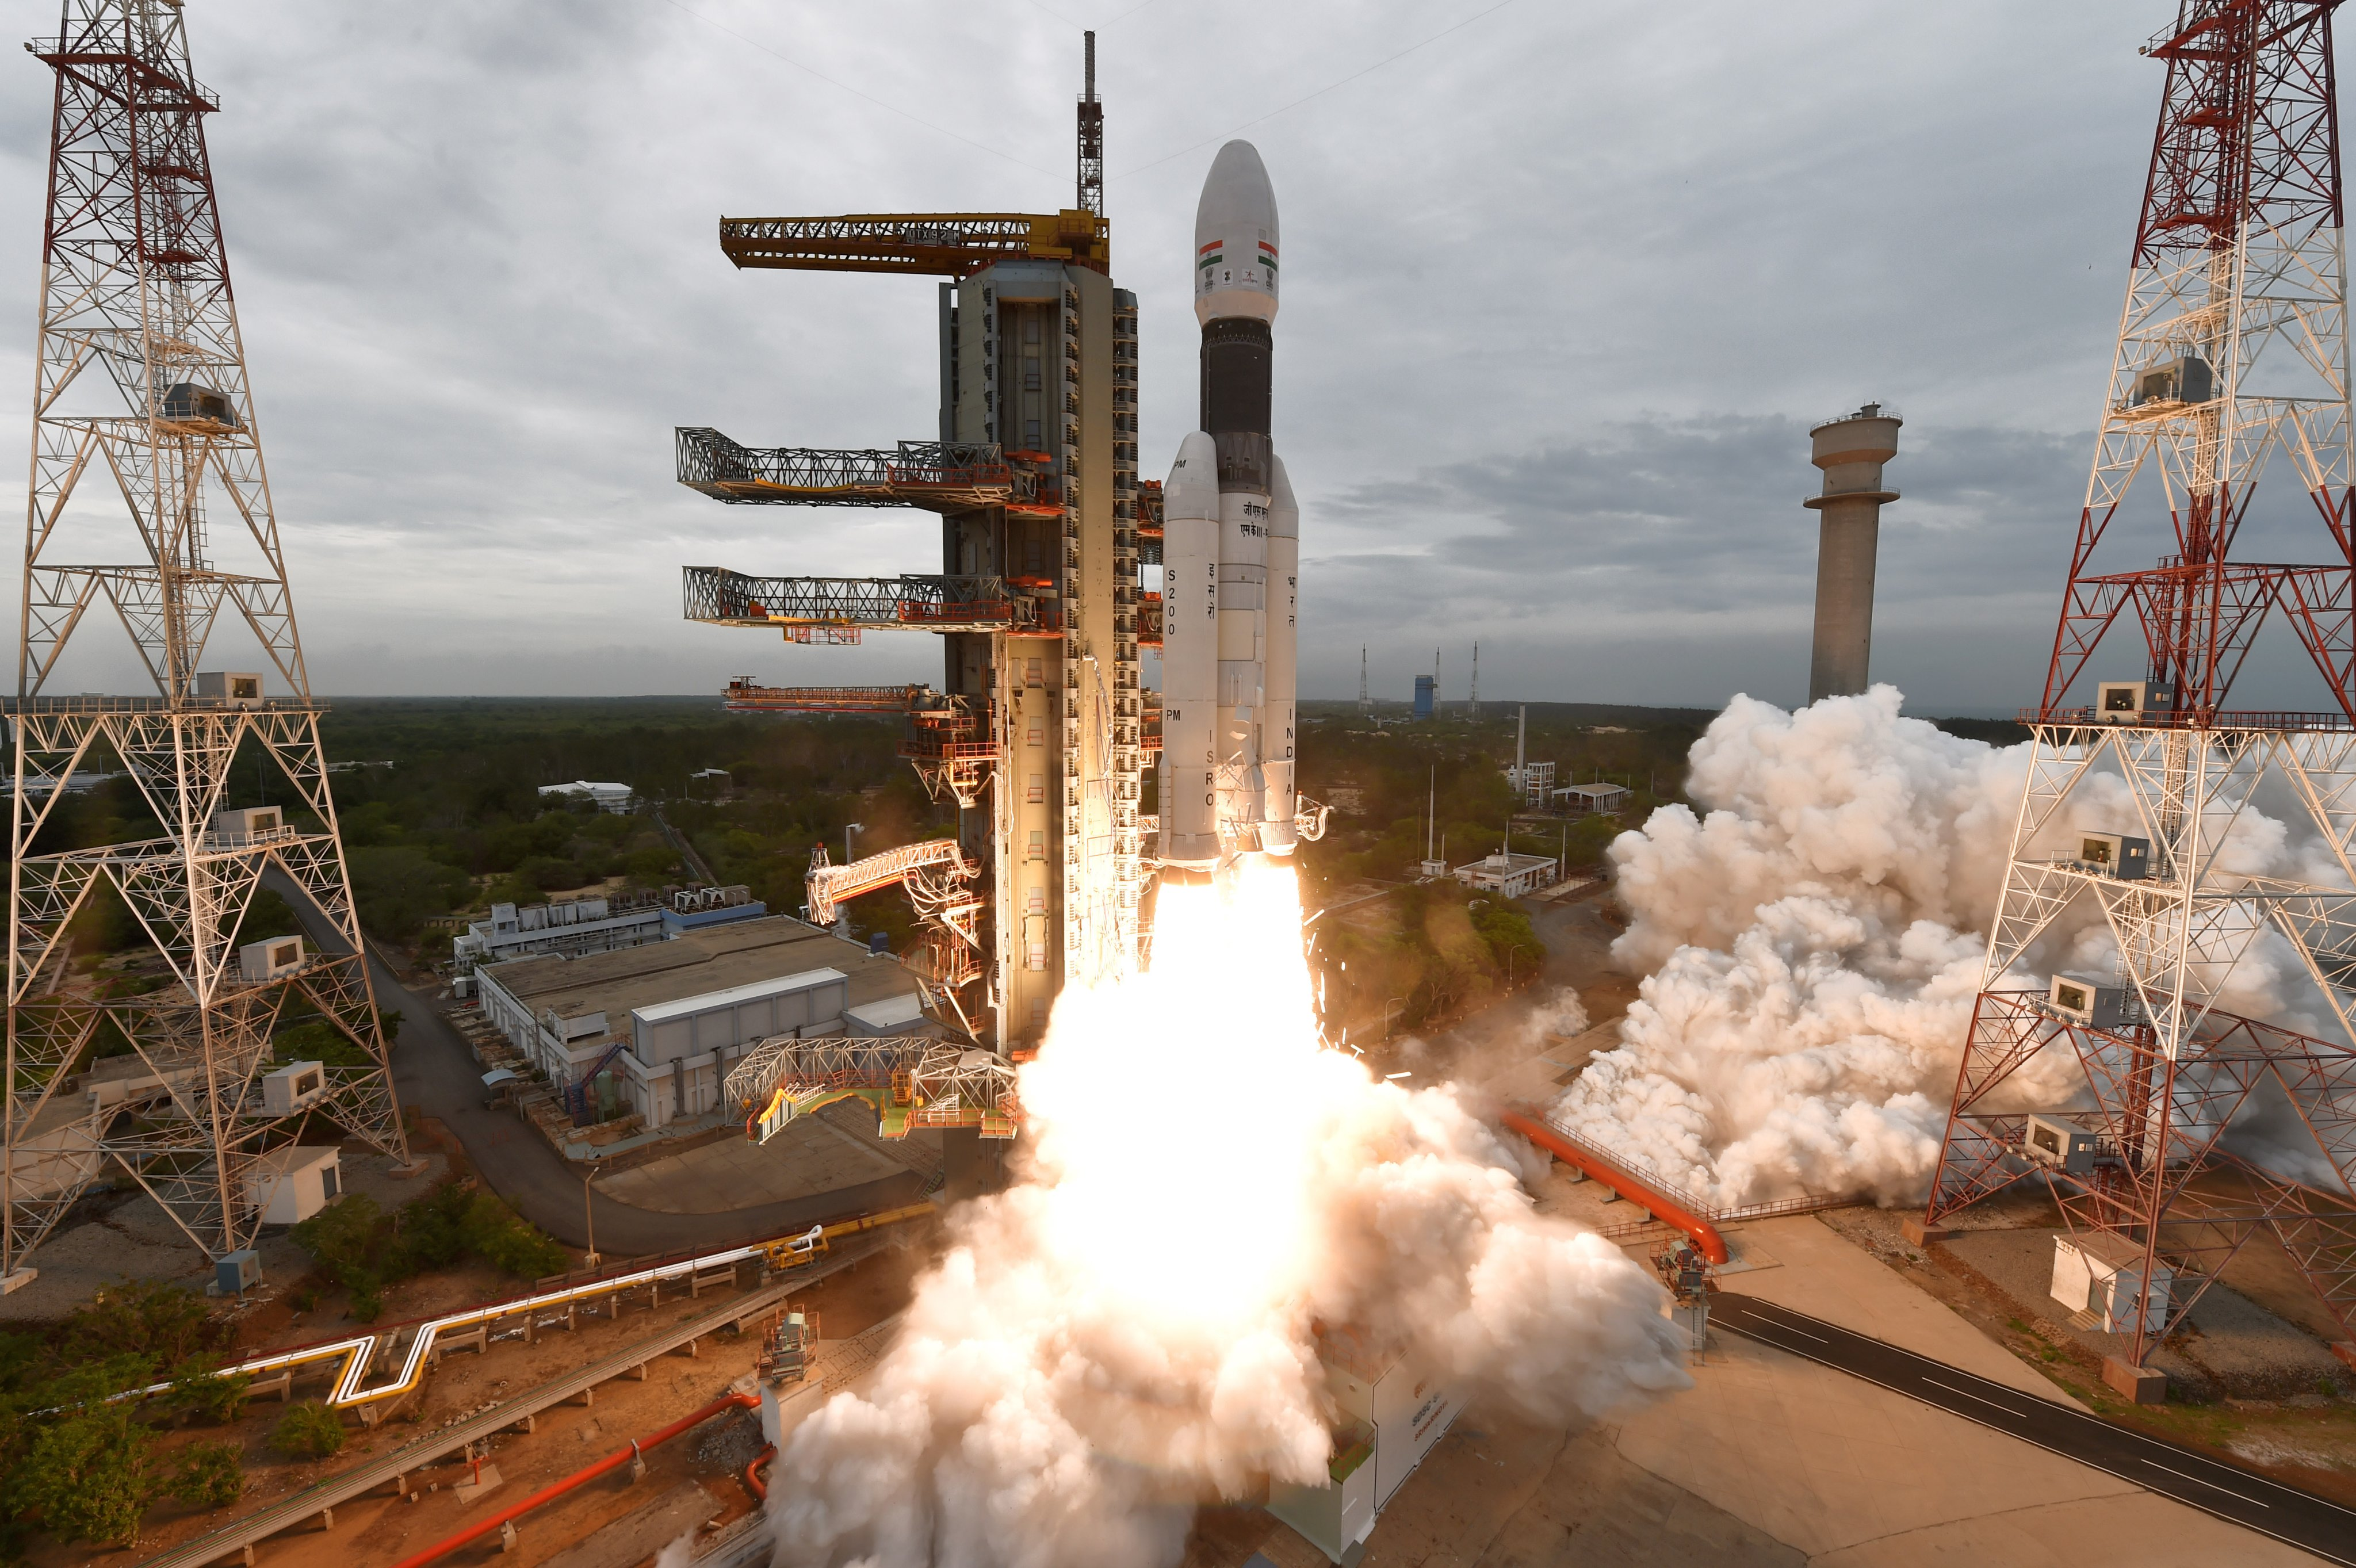 Chandrayaan 2 lifted off from India's spaceport at Sriharikota in Andhra Pradesh on July 22. Photo courtesy: Twitter/@isro